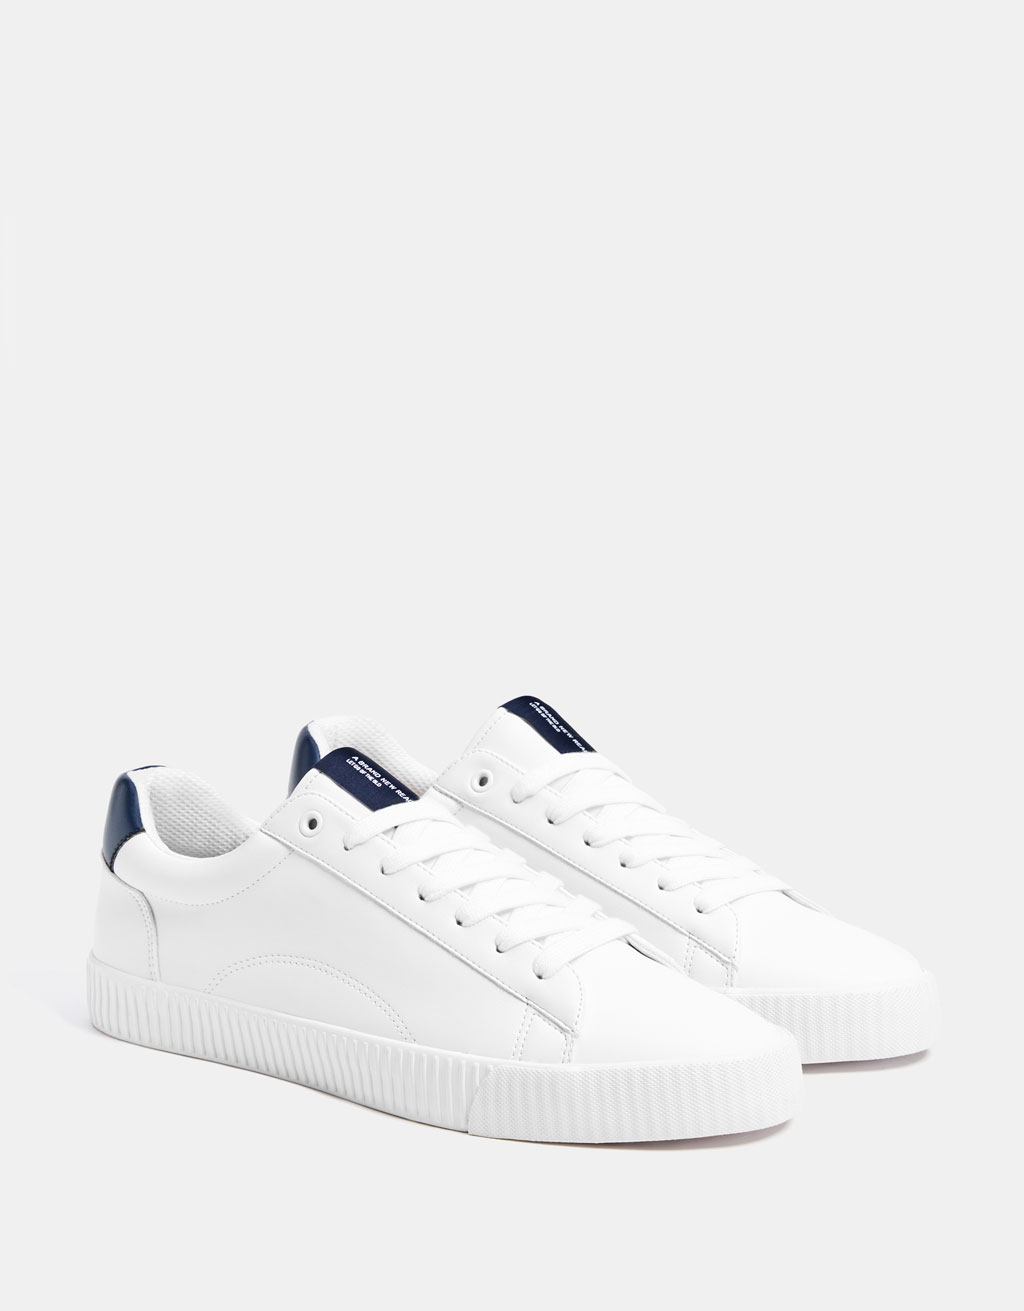 Men's contrasting trainers